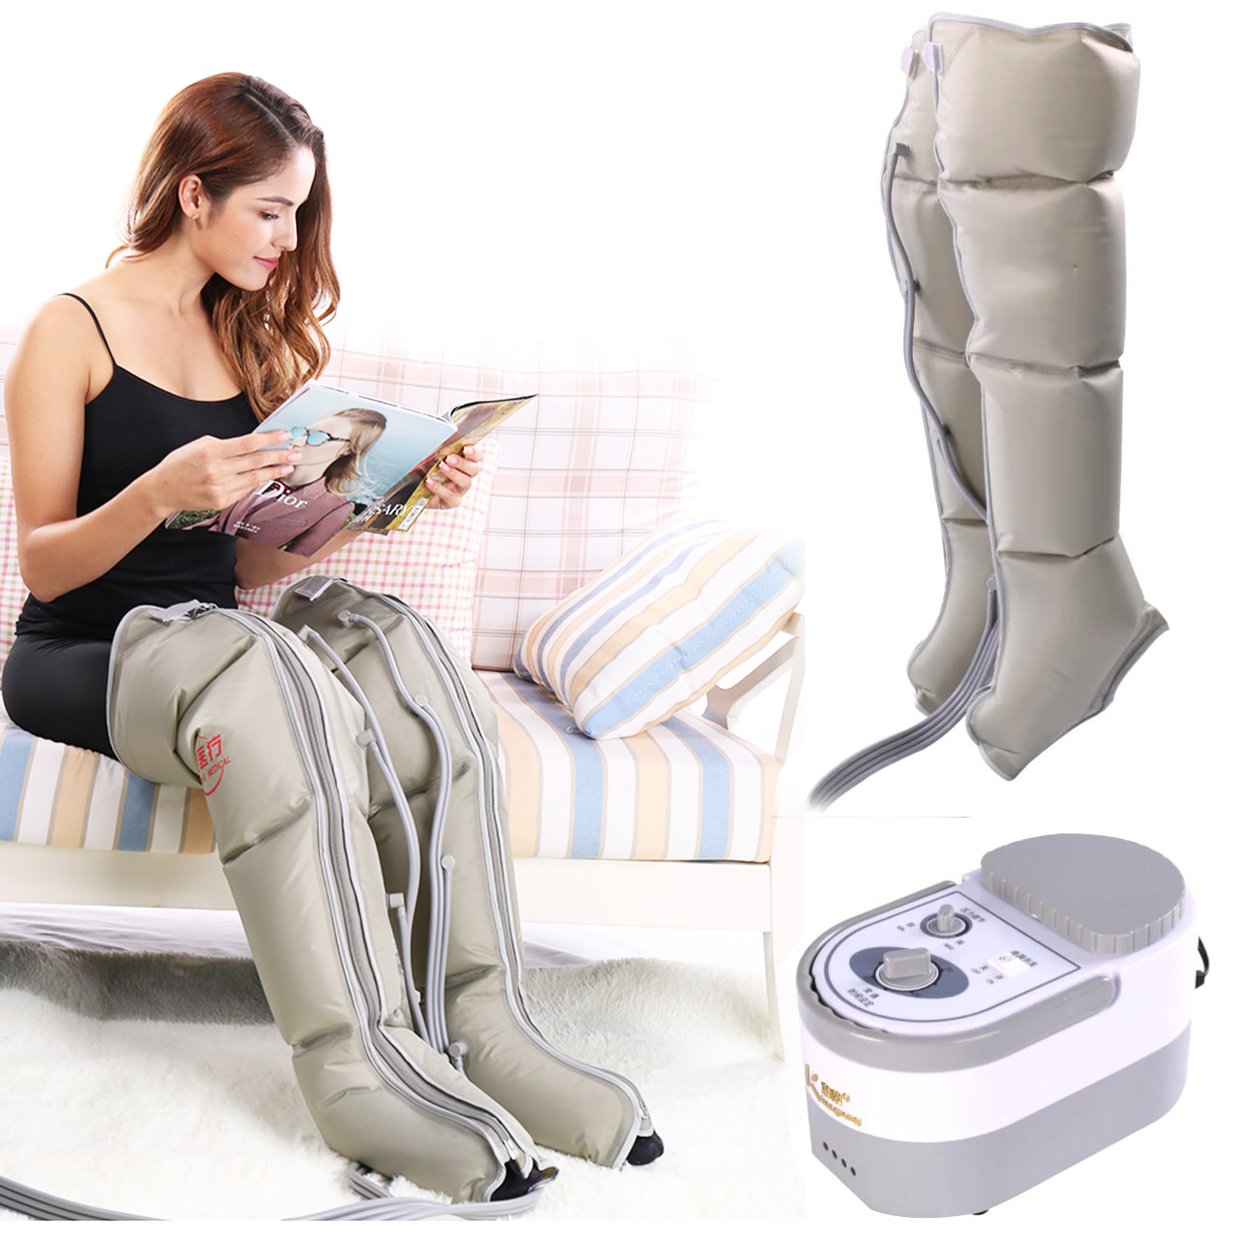 popular leg massager machine buy cheap leg massager machine lots from china leg massager machine. Black Bedroom Furniture Sets. Home Design Ideas